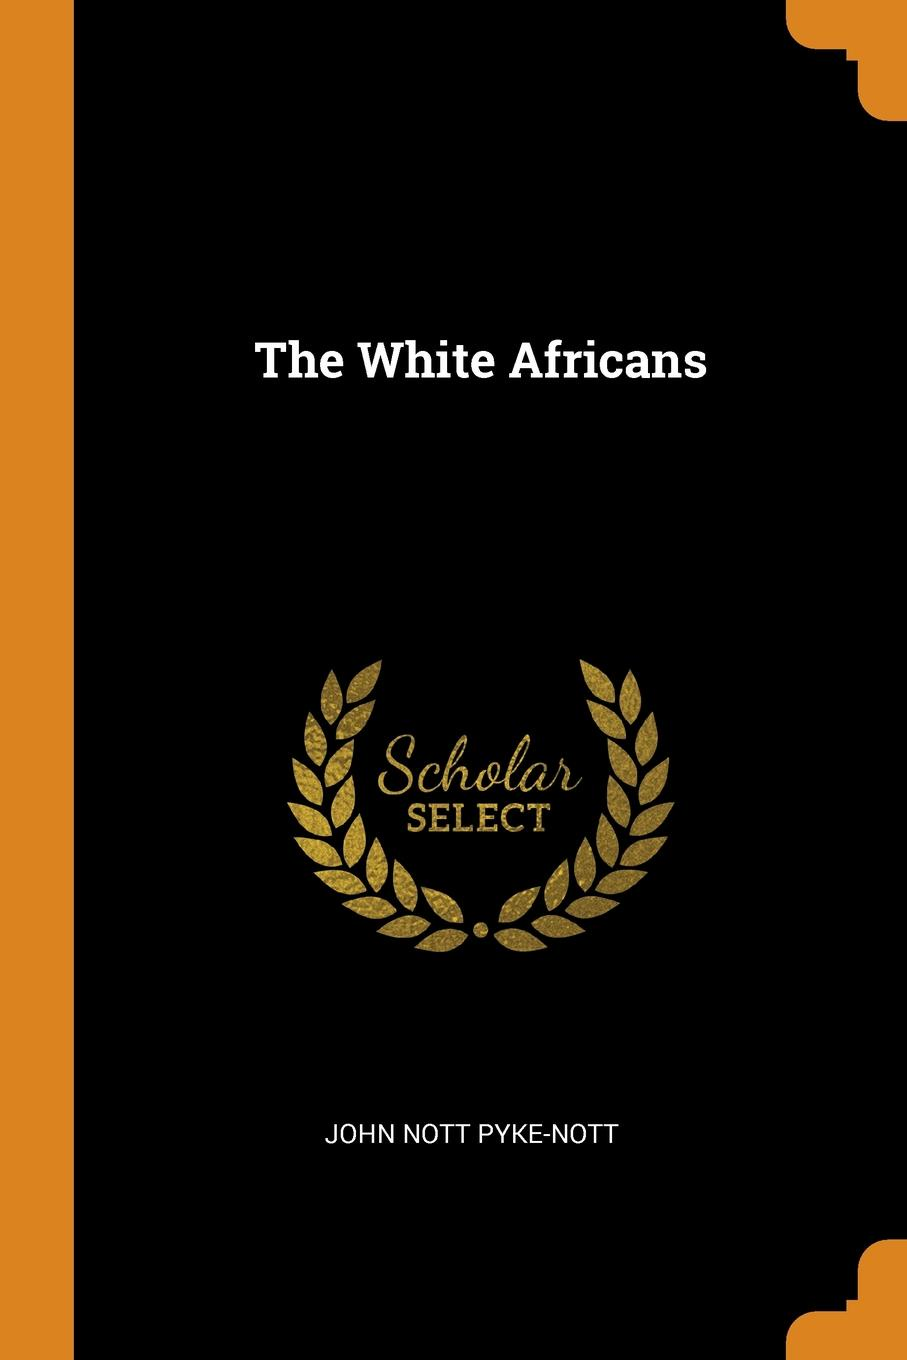 The White Africans